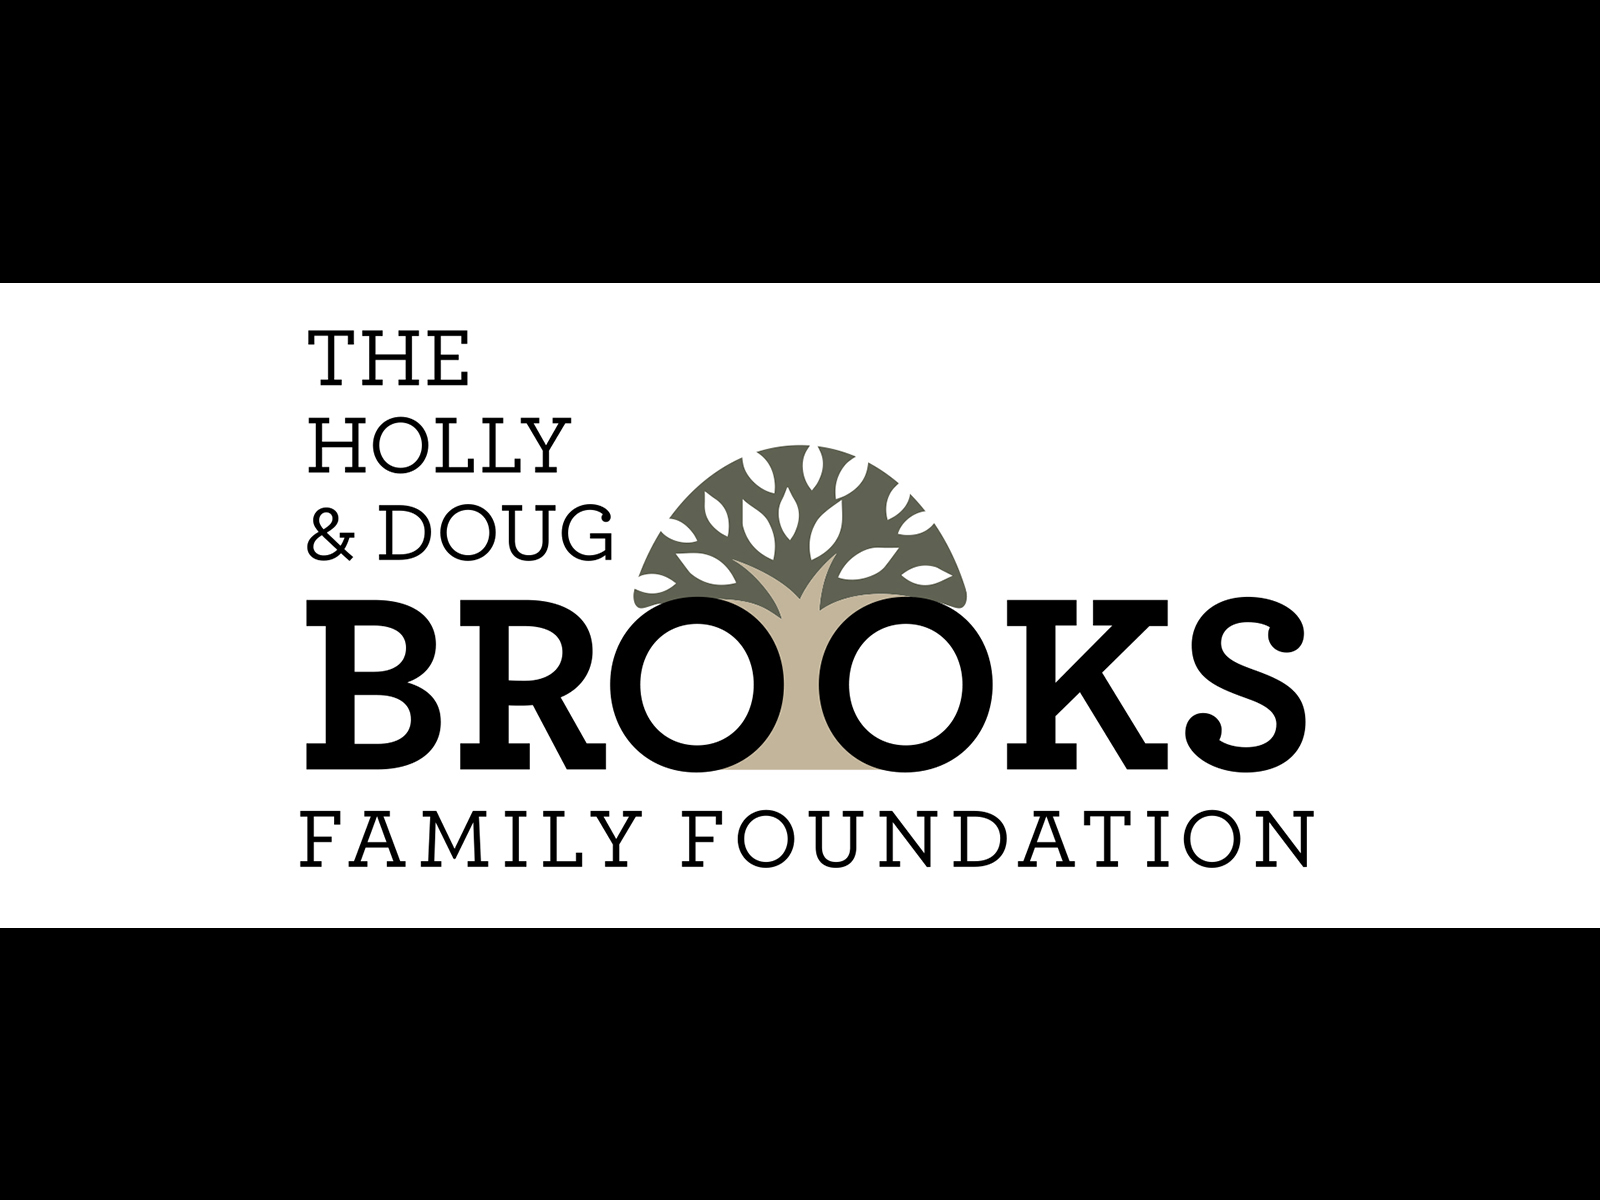 Holly and Doug Brooks Family Foundation Continue Support of NTPGA's Growth of the Game Initiatives